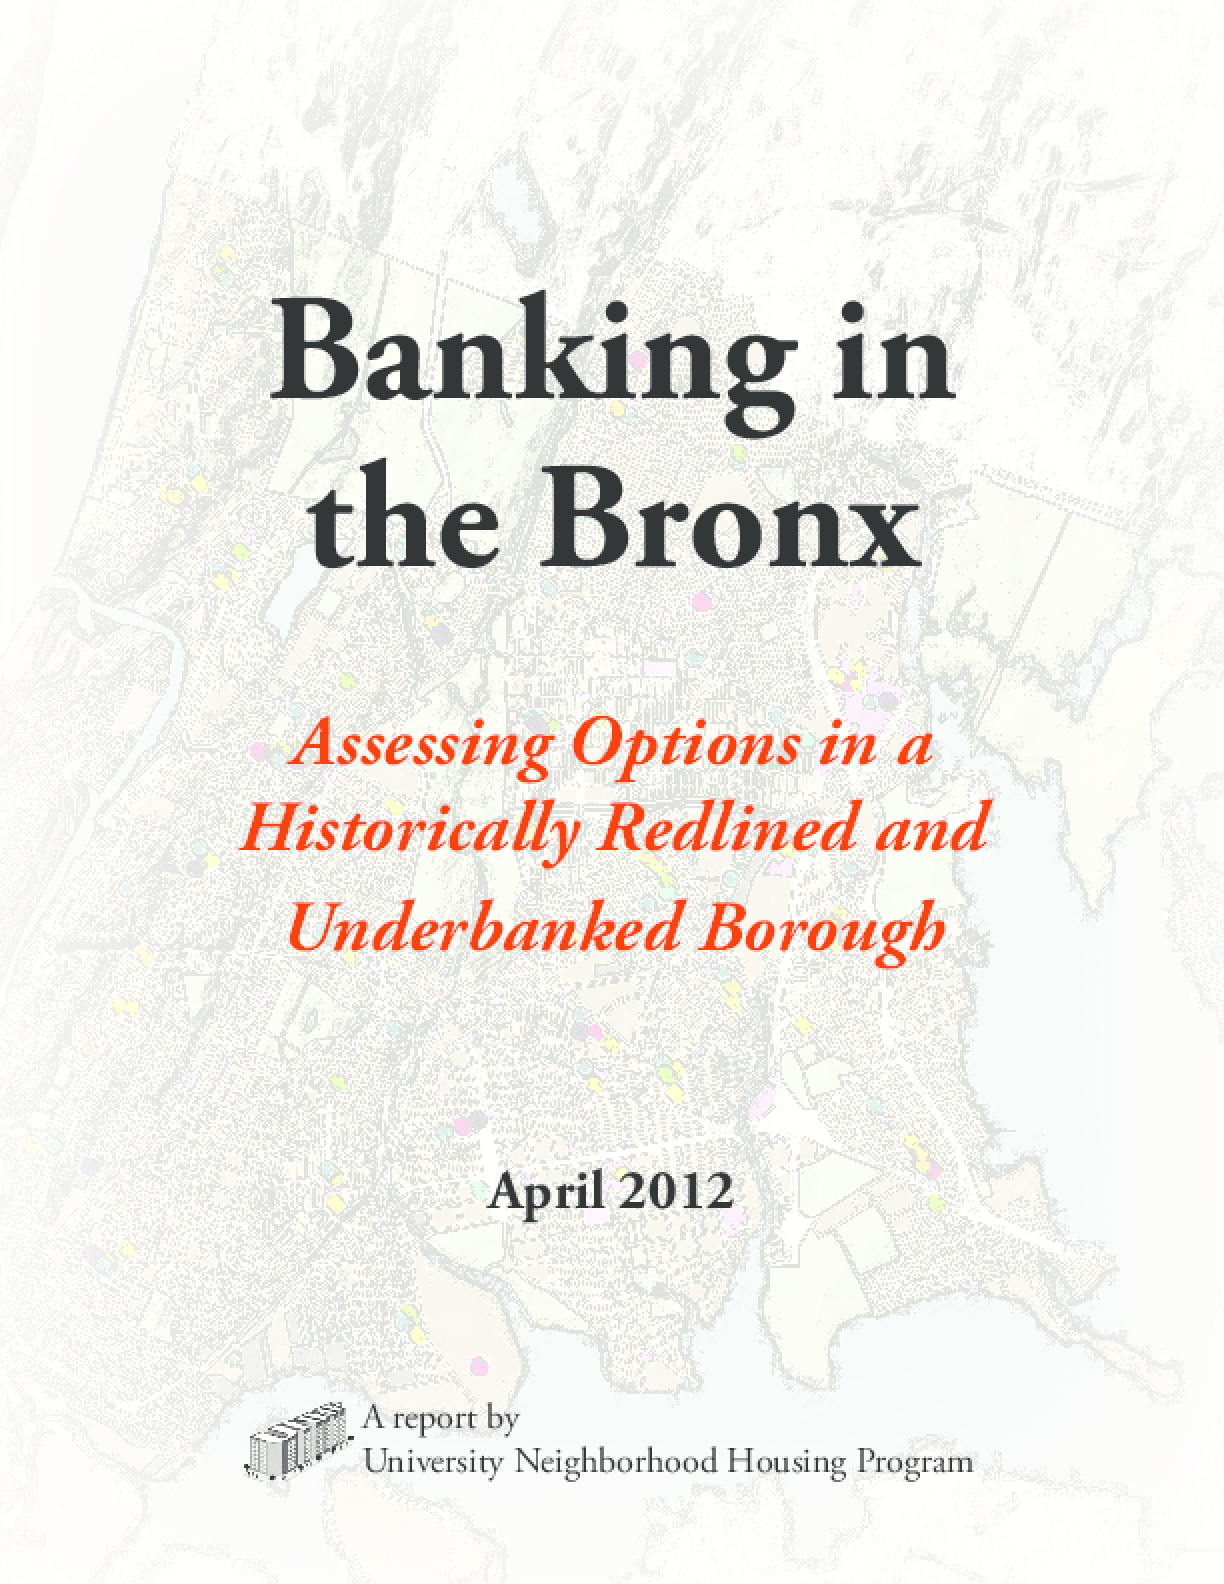 Creating a Bronx Economy: Banking Options and Alternative Solutions